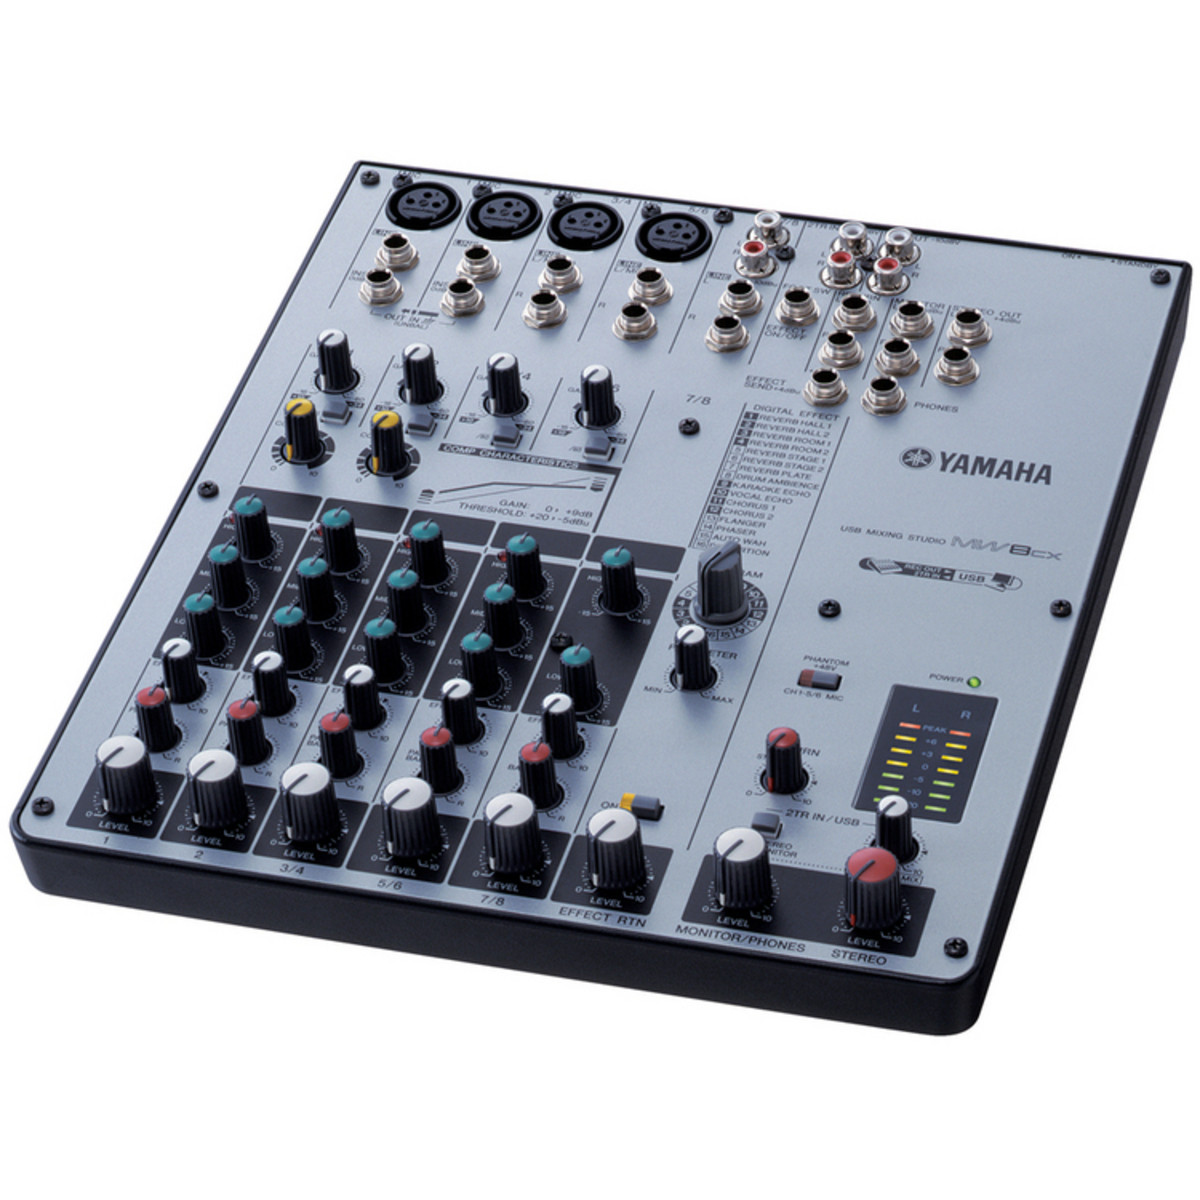 Yamaha mw8cx table de mixage usb gear4music - Table de mixage yamaha usb ...